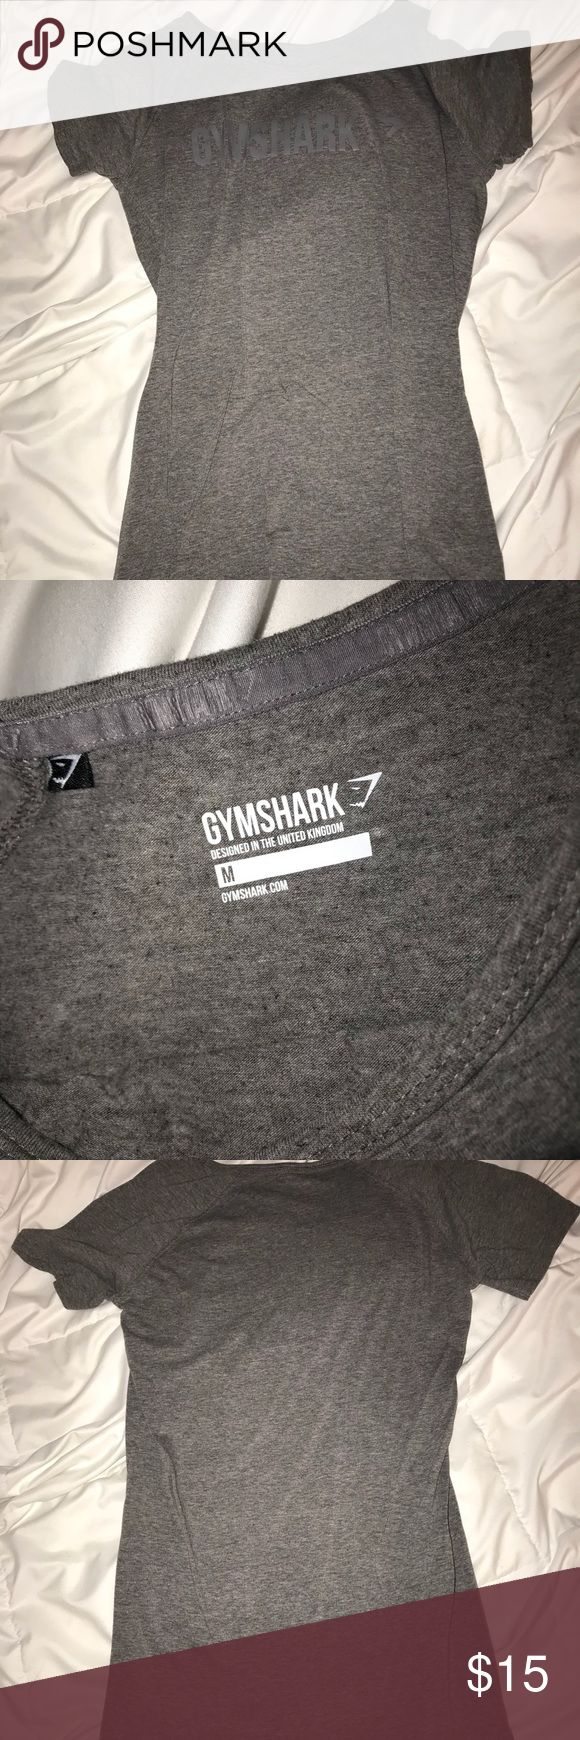 Gymshark Short Sleeve Shirt This is just a normal Gymshark T-shirt! Gymshark Tops Tees - Short Sleeve